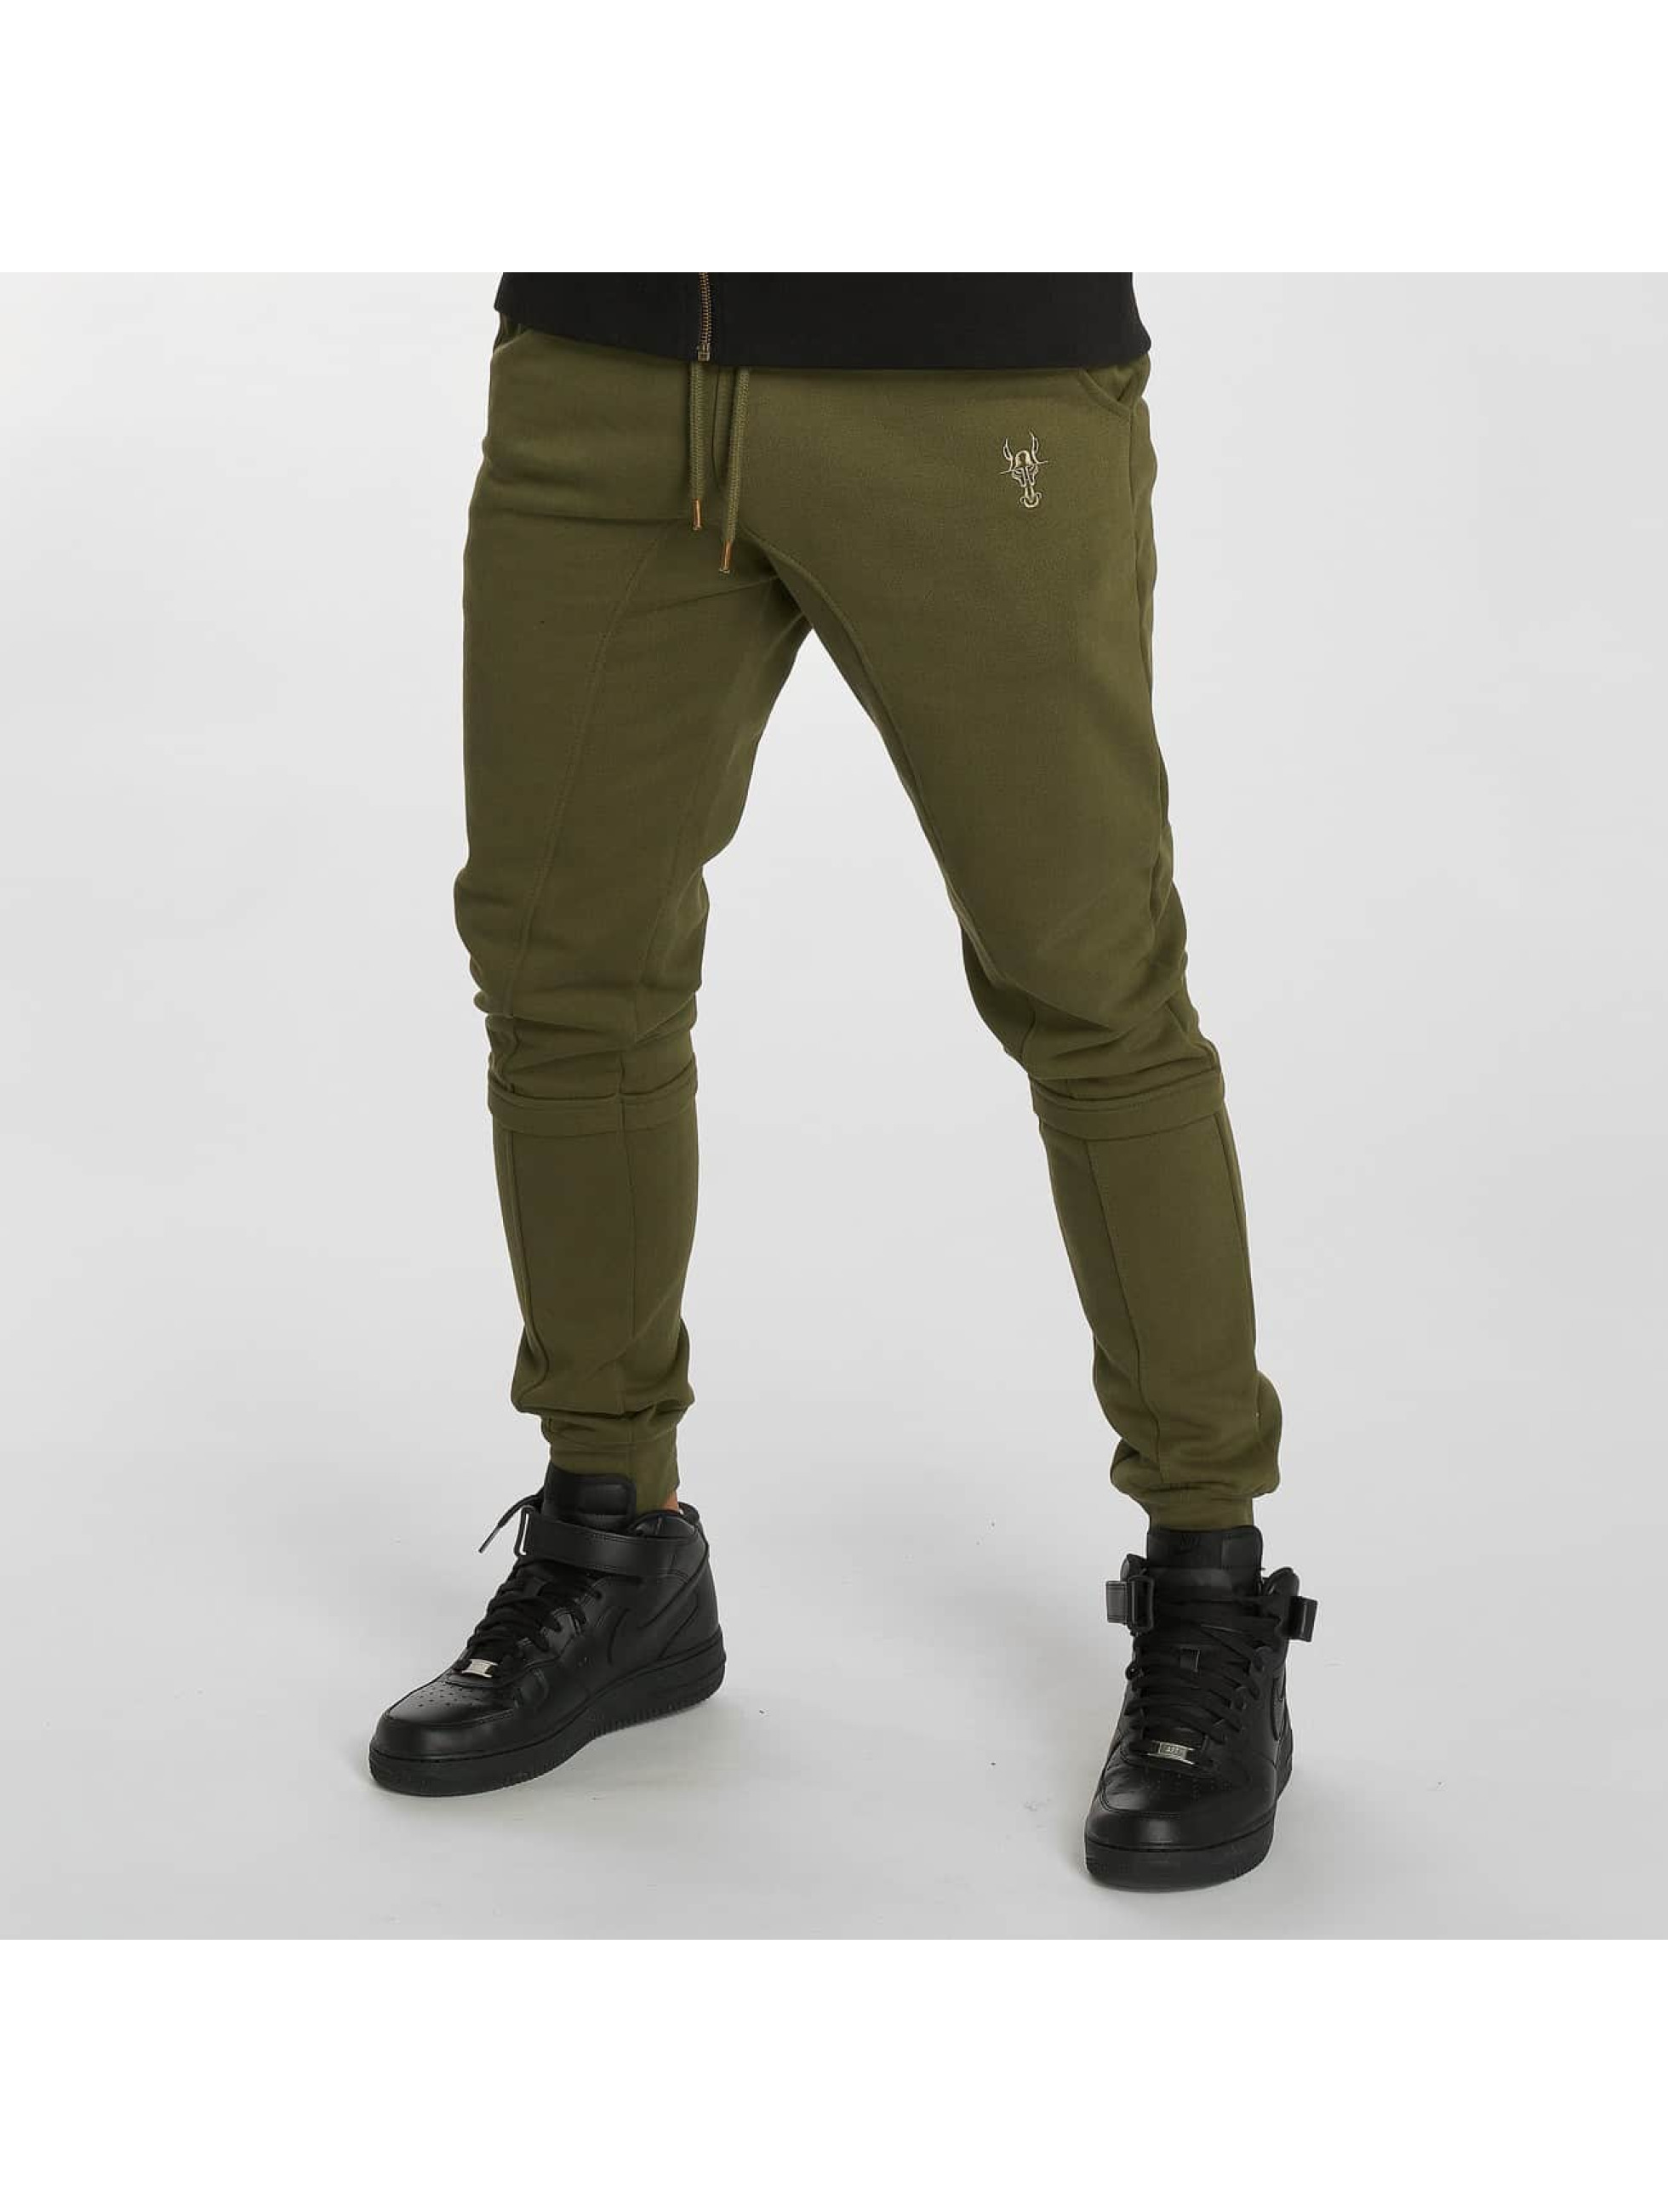 Cavallo de Ferro / Sweat Pant Bull in olive S